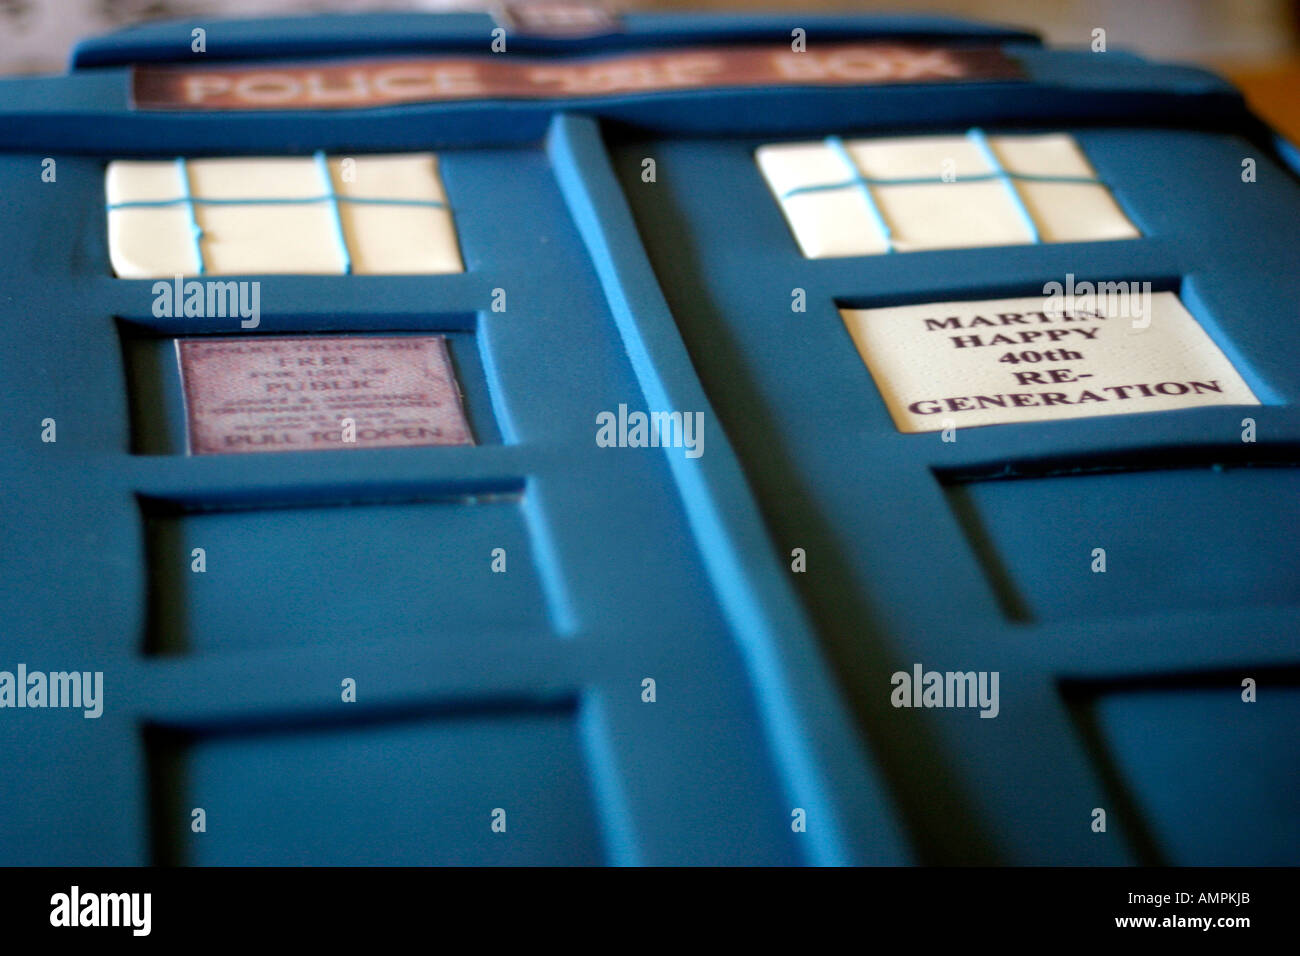 The TARDIS Cake - Stock Image